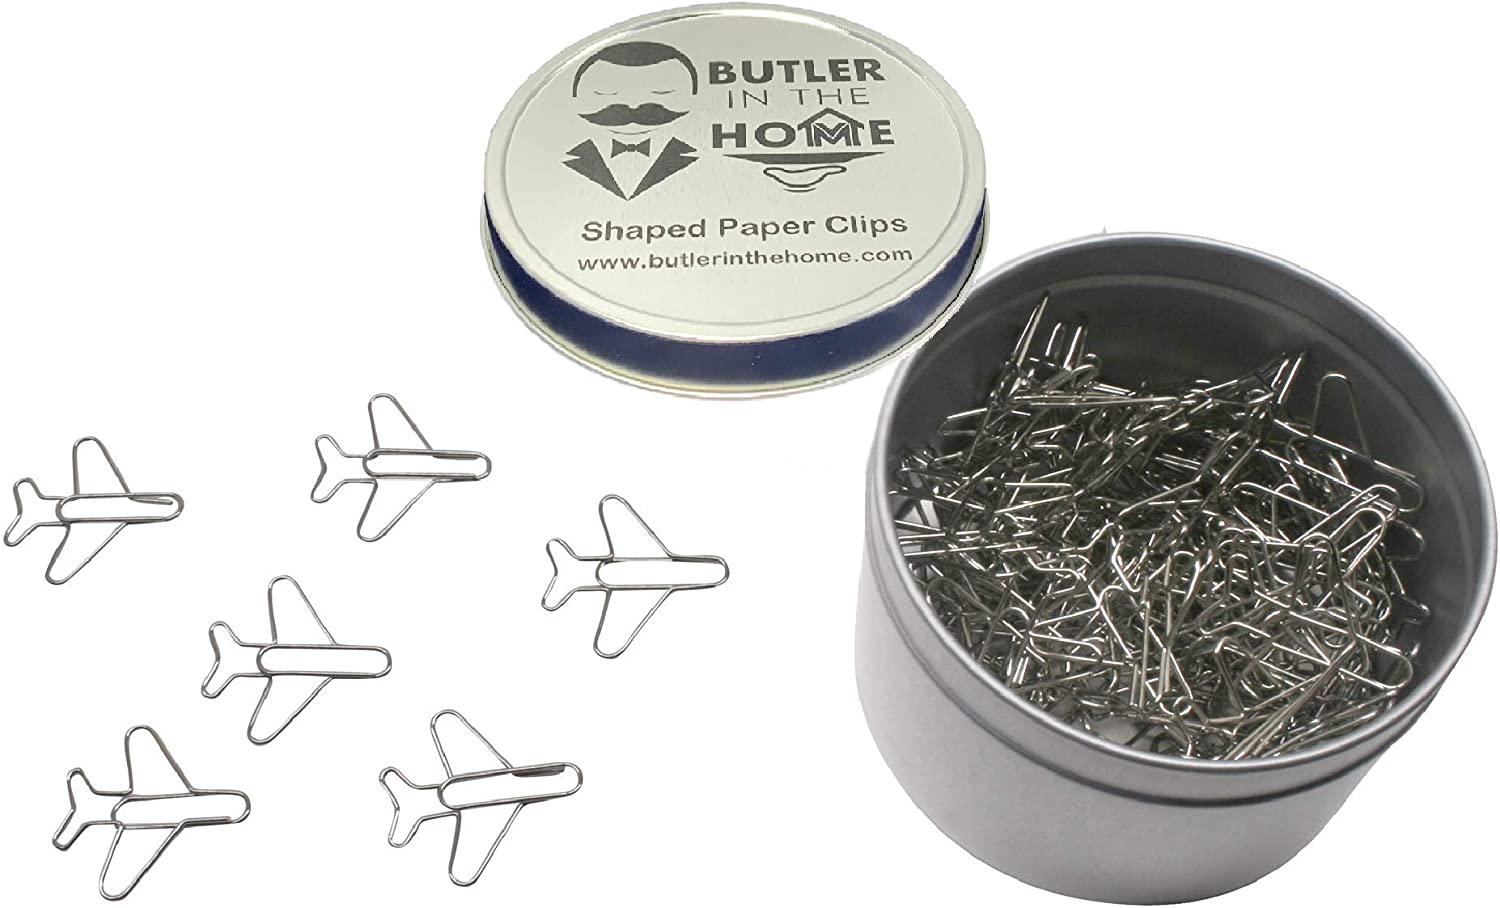 Butler in the Home 100 Count Airplane Shaped Paper Clips Great for Paper Clip Collectors or Office Gift - Comes in Round Tin with Lid and Gift Box - (Silver)